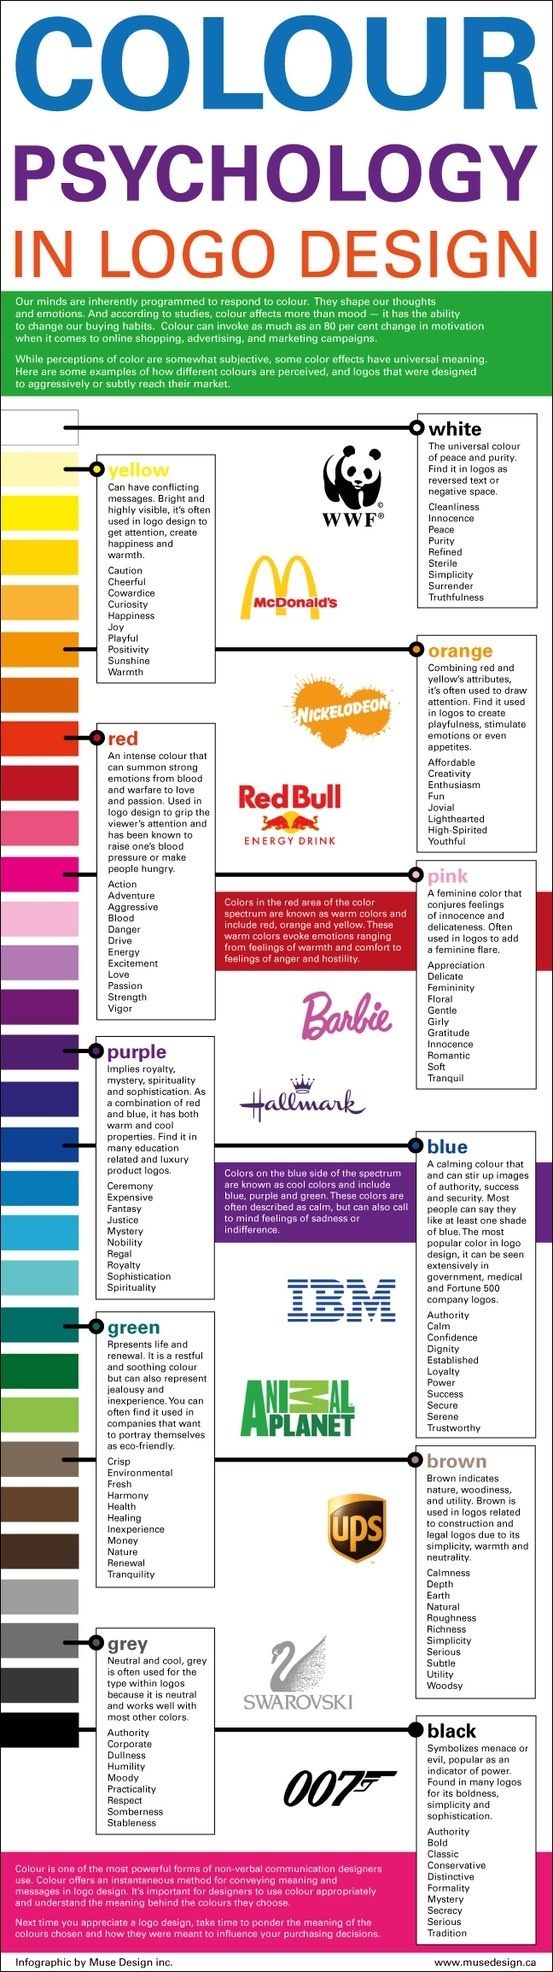 Color Psychology in Logos